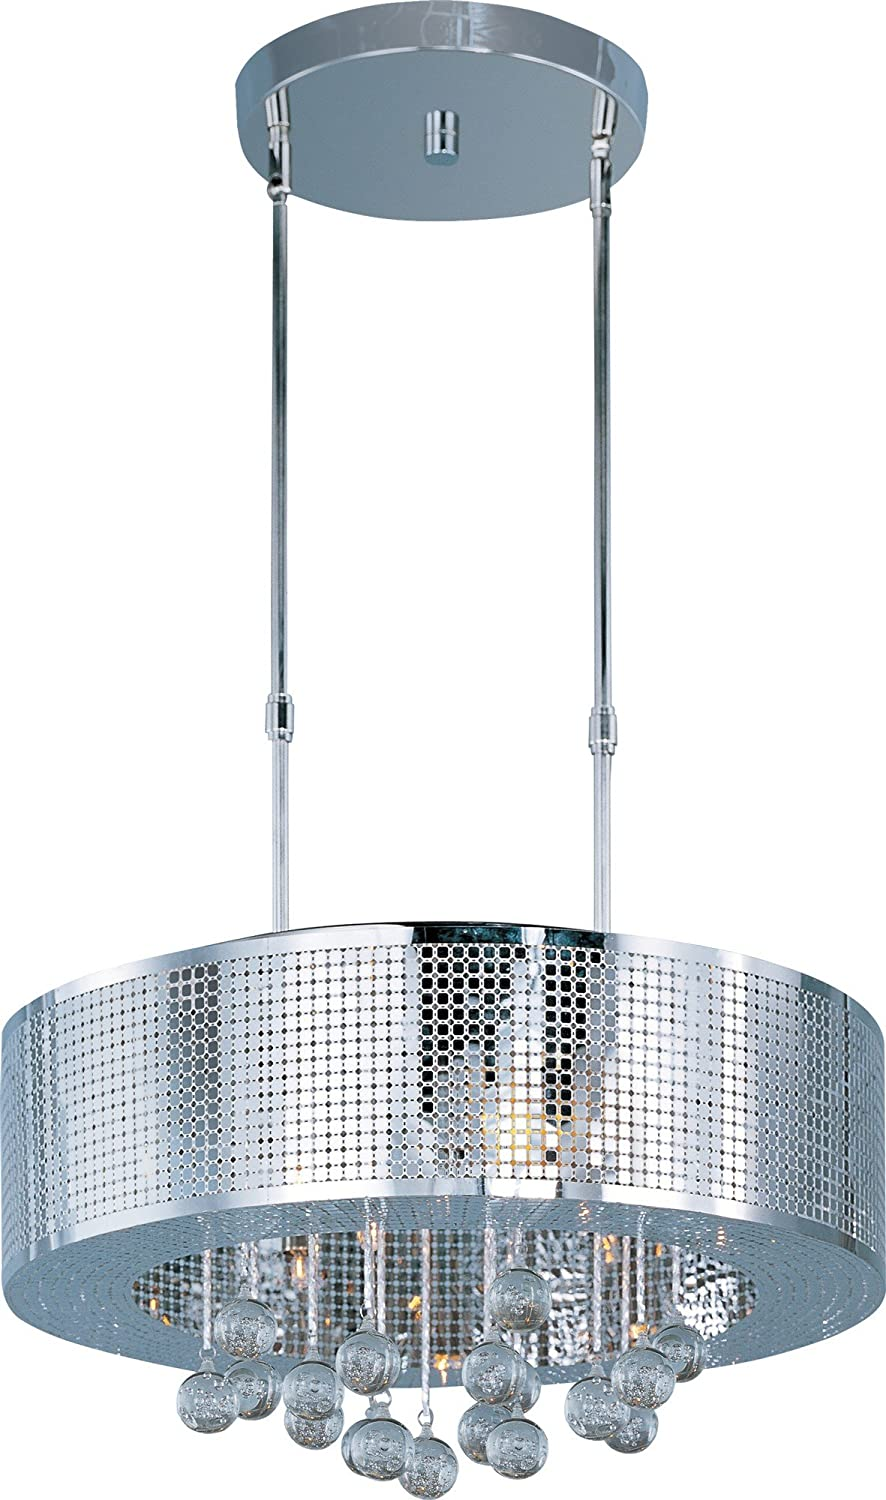 ET2 Lighting E24387-91PC Pendant with Bubble Detailed Glass Shades, Polished Chrome Finish by ET2 Lighting B0075AVQ2E